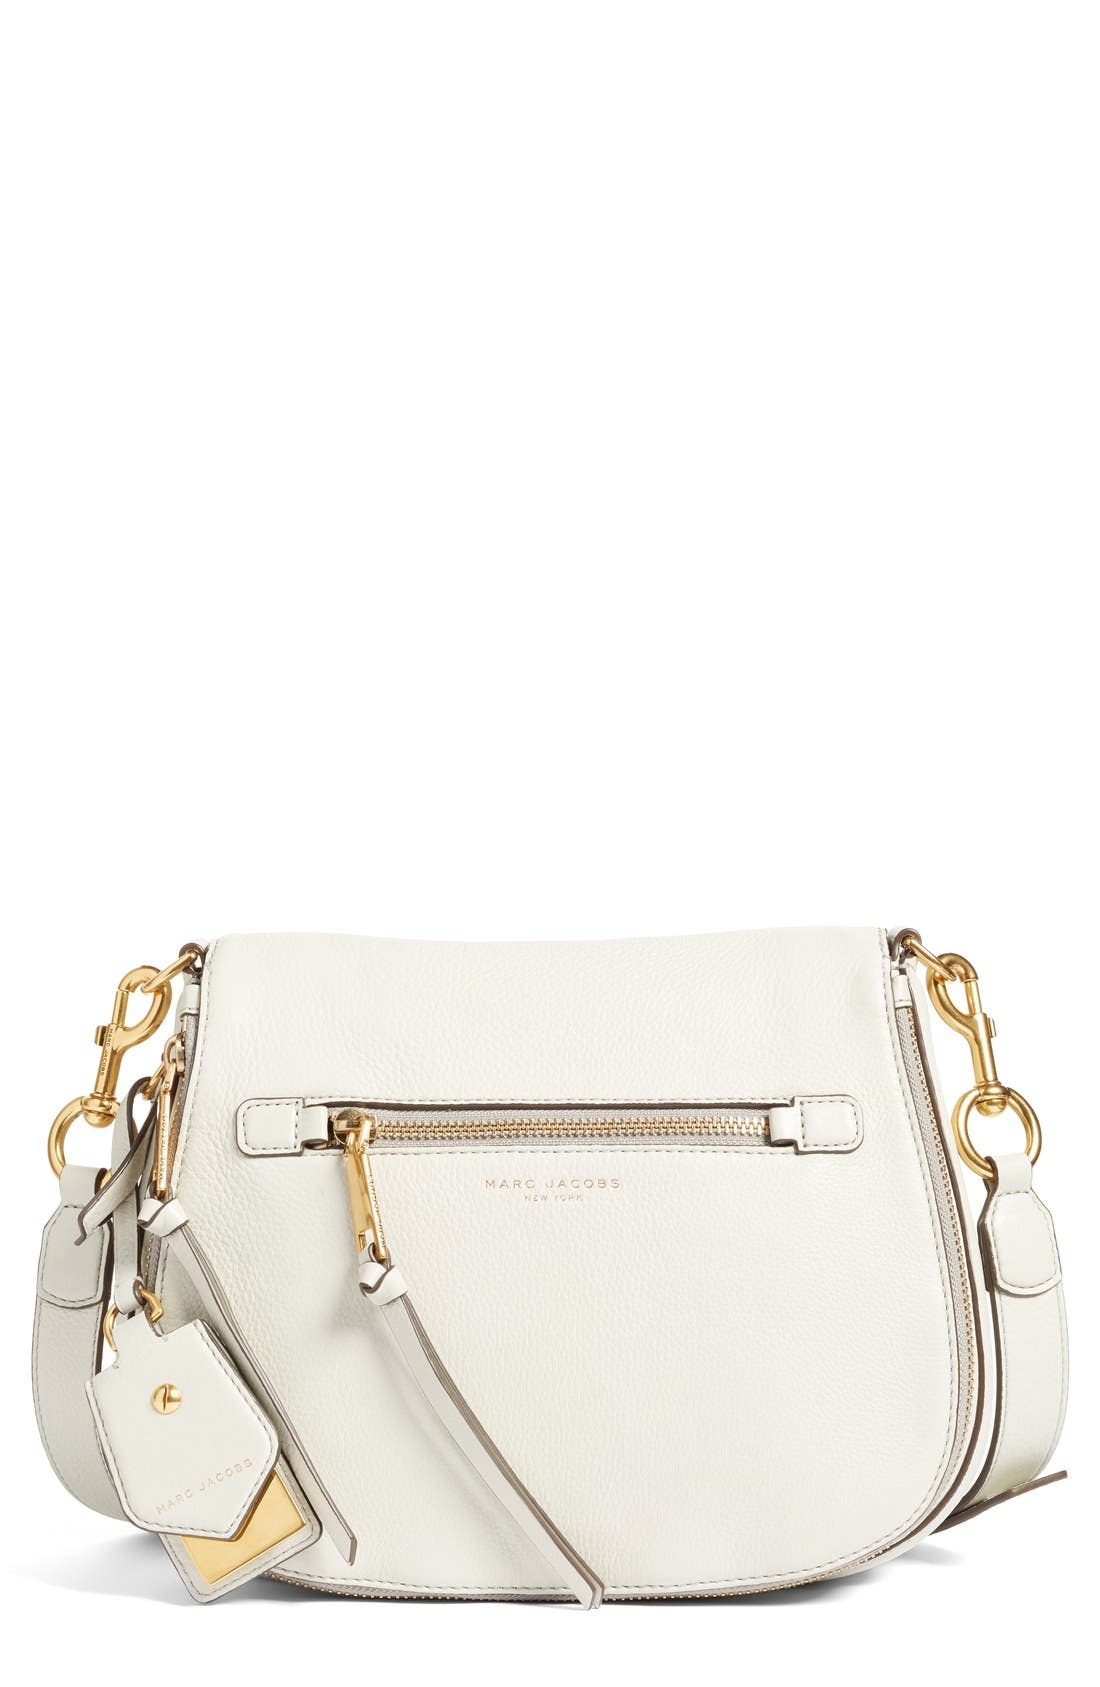 Alternate Image 1 Selected - MARC JACOBS Recruit Nomad Pebbled Leather Crossbody Bag